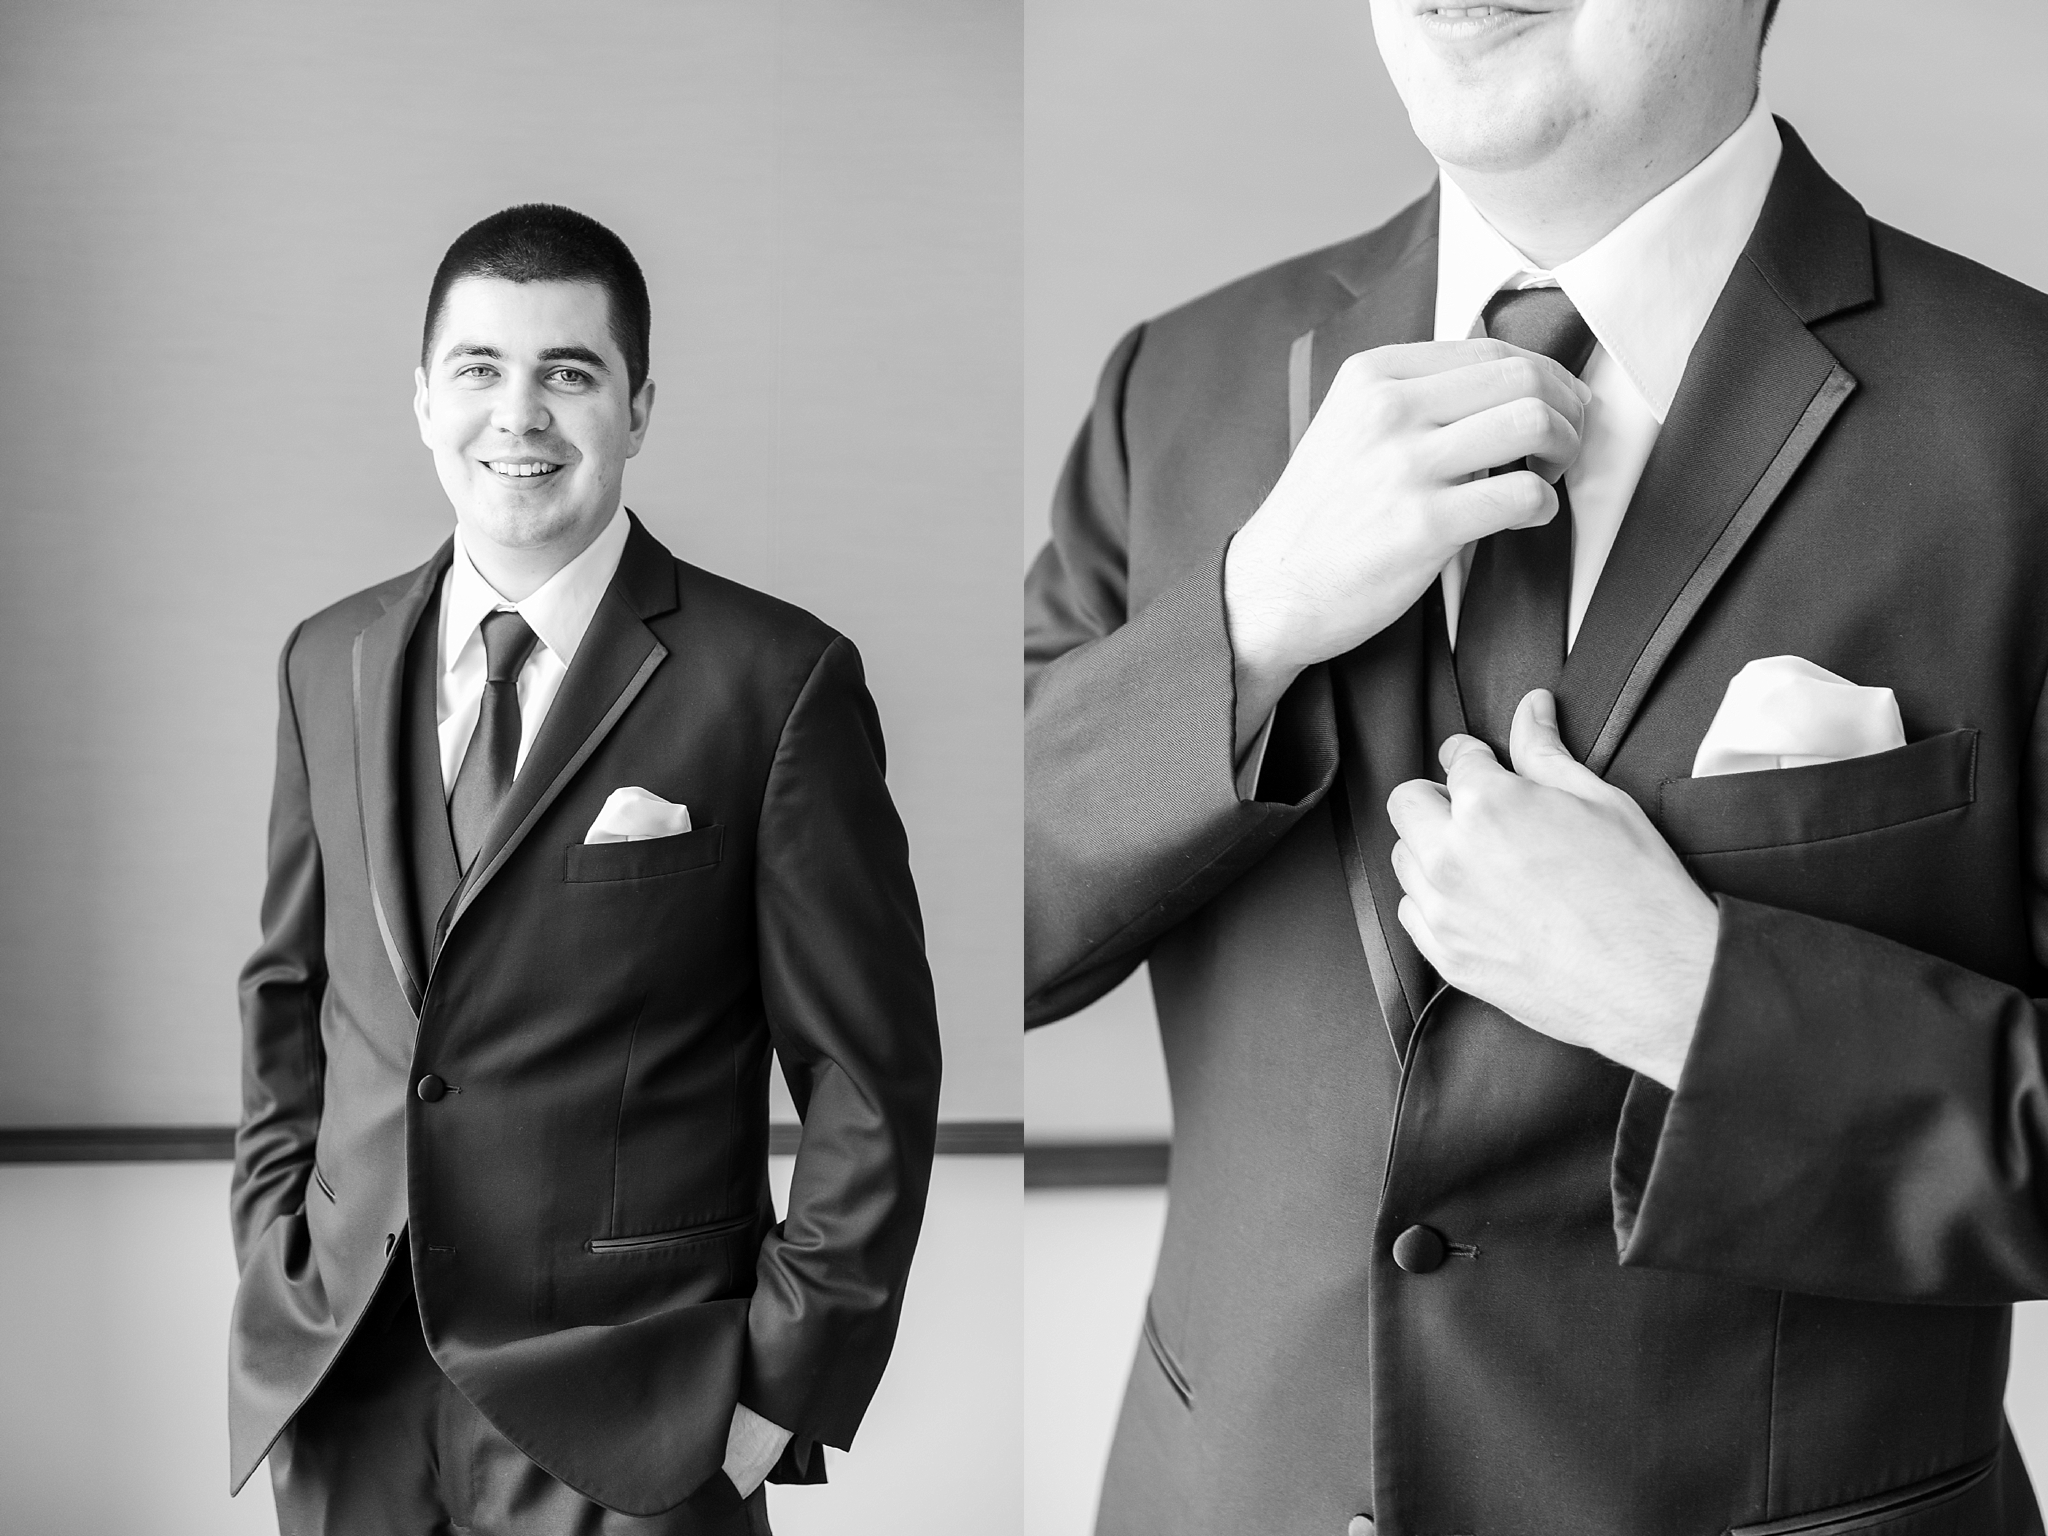 candid-romantic-wedding-photos-at-the-h-hotel-in-midland-michigan-by-courtney-carolyn-photography_0006.jpg